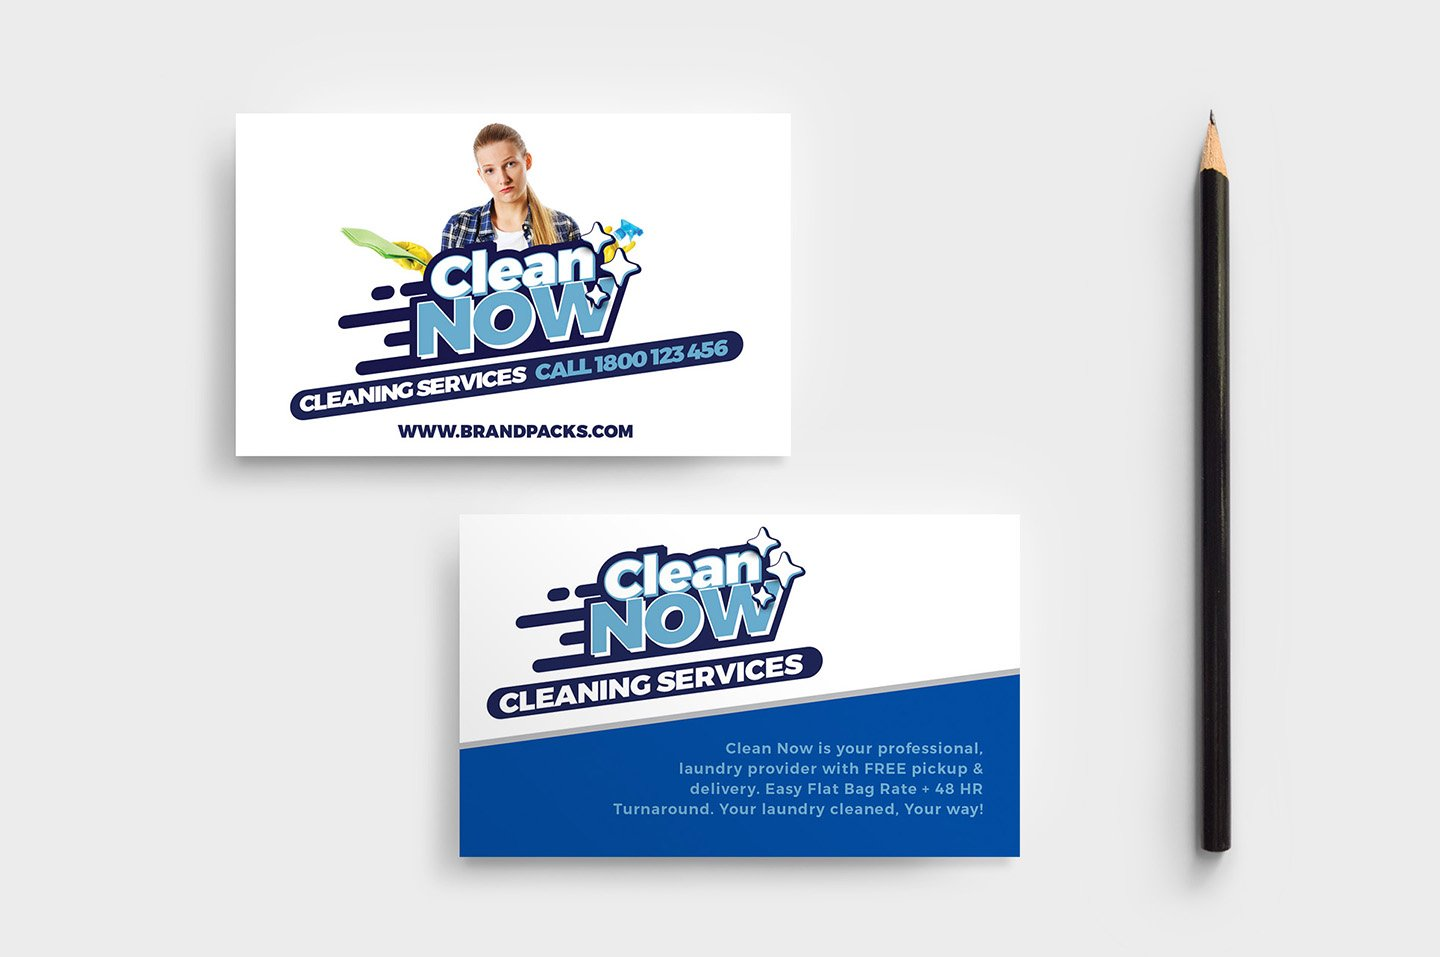 Cleaning Service Business Card ~ Business Card Templates ~ Creative ...